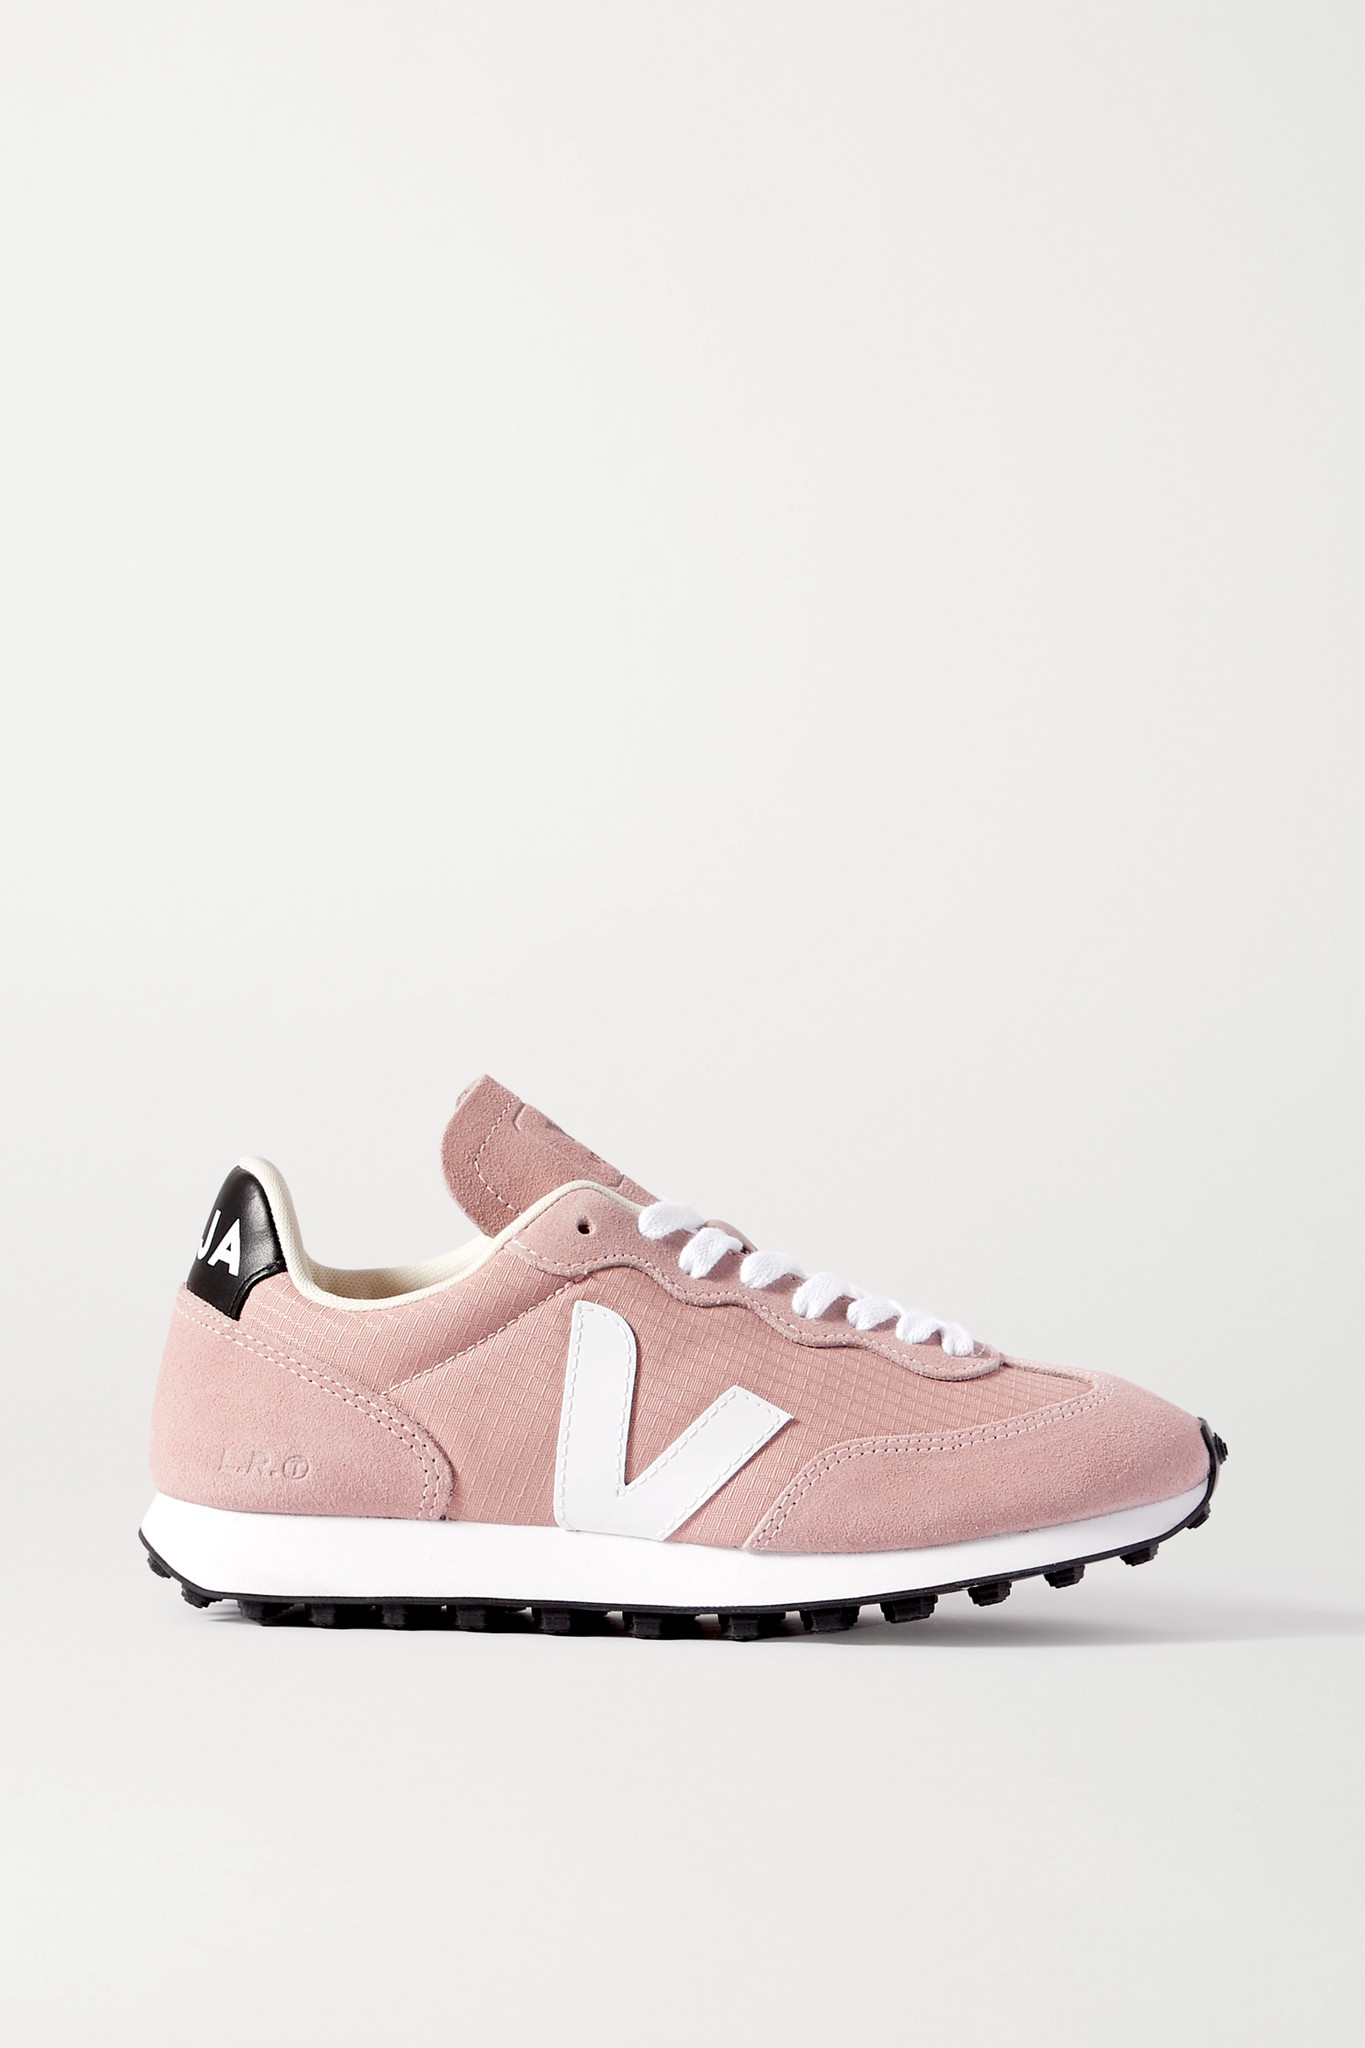 VEJA - + Net Sustain Rio Branco Leather-trimmed Suede And Mesh Sneakers - Pink - IT39